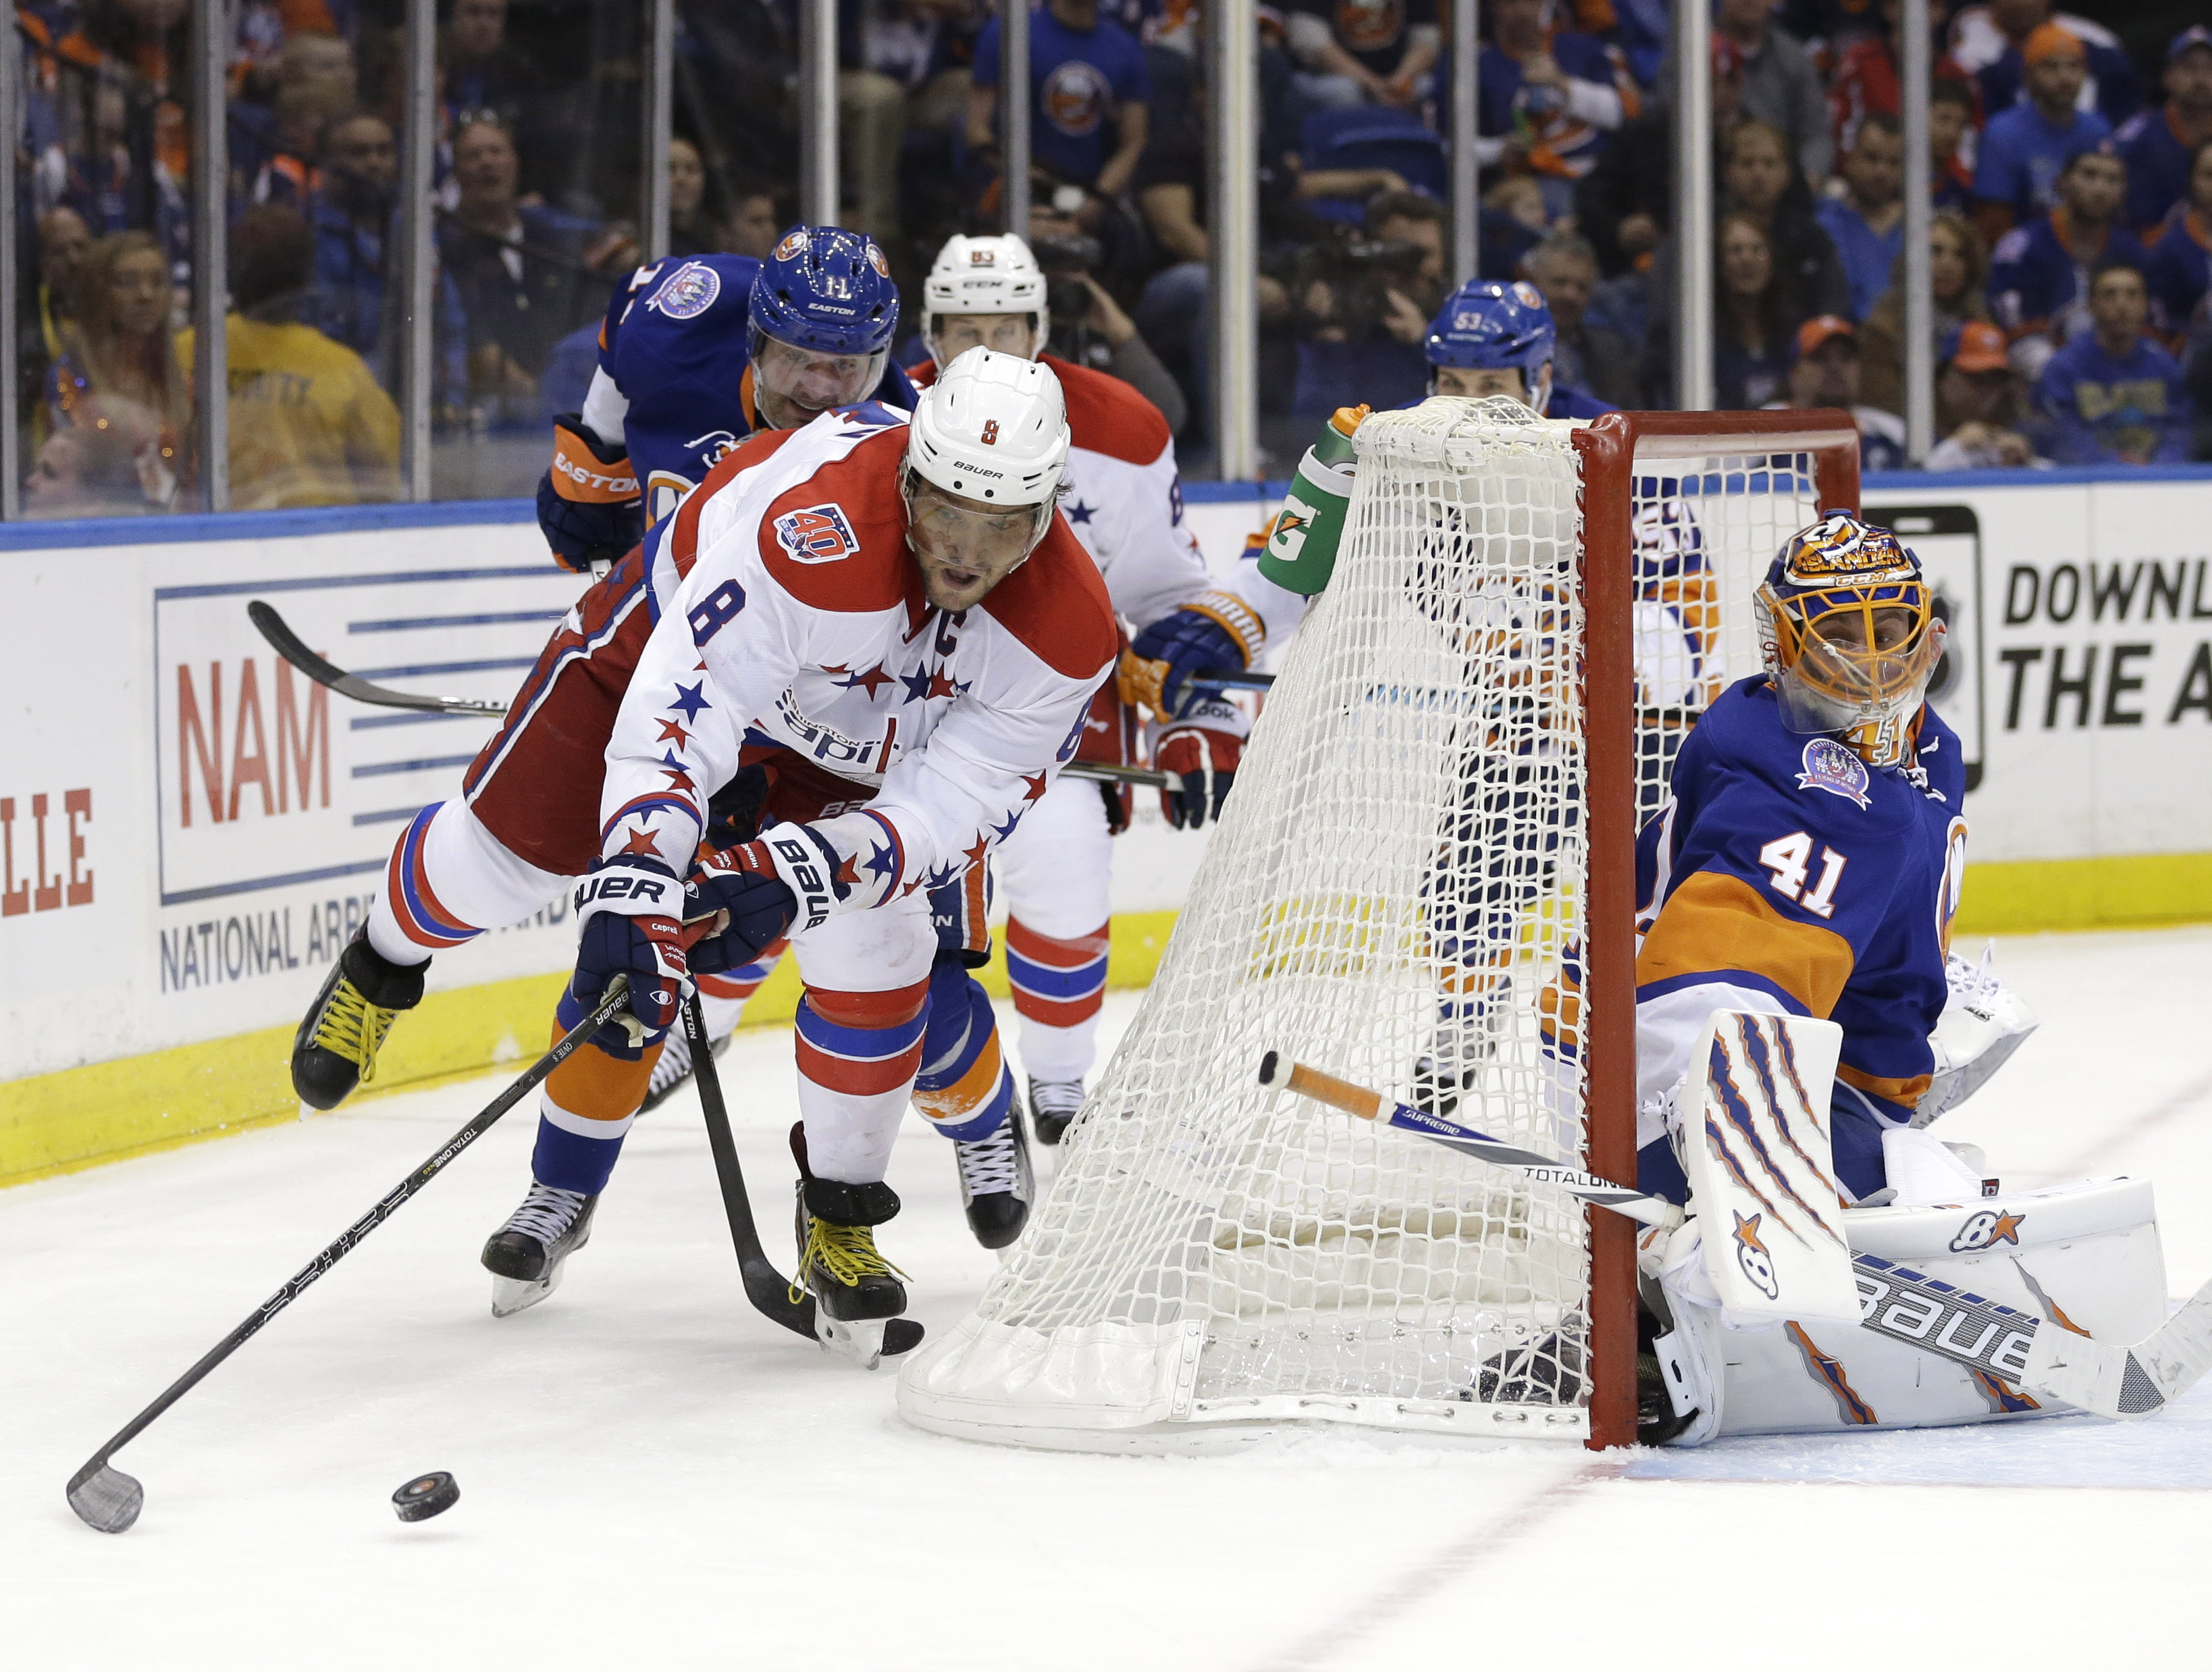 New York Islanders goalie Jaroslav Halak, right, looks on as Washington Capitals' Alex Ovechkin comes around the back of the net during the third period of Game 3 of a first-round NHL hockey playoff series, Sunday, April 19, 2015, in Uniondale, N.Y. (AP P